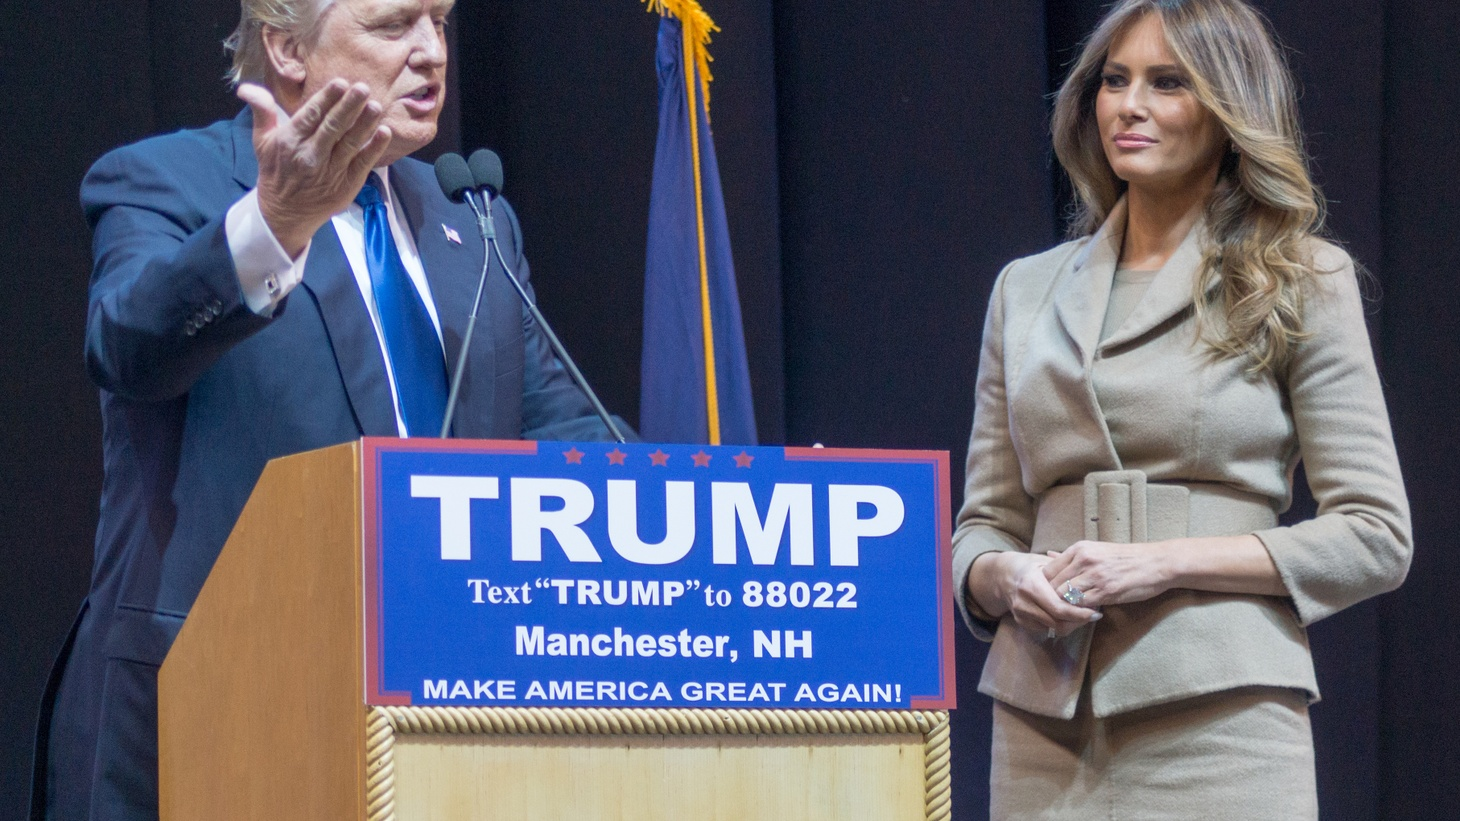 Melania Trump will be the headline speaker Monday at the Republican Convention in Cleveland. Trump has had problems courting women voters. We ask some conservative women at the Republican National Convention to tell us their feelings about the candidate.